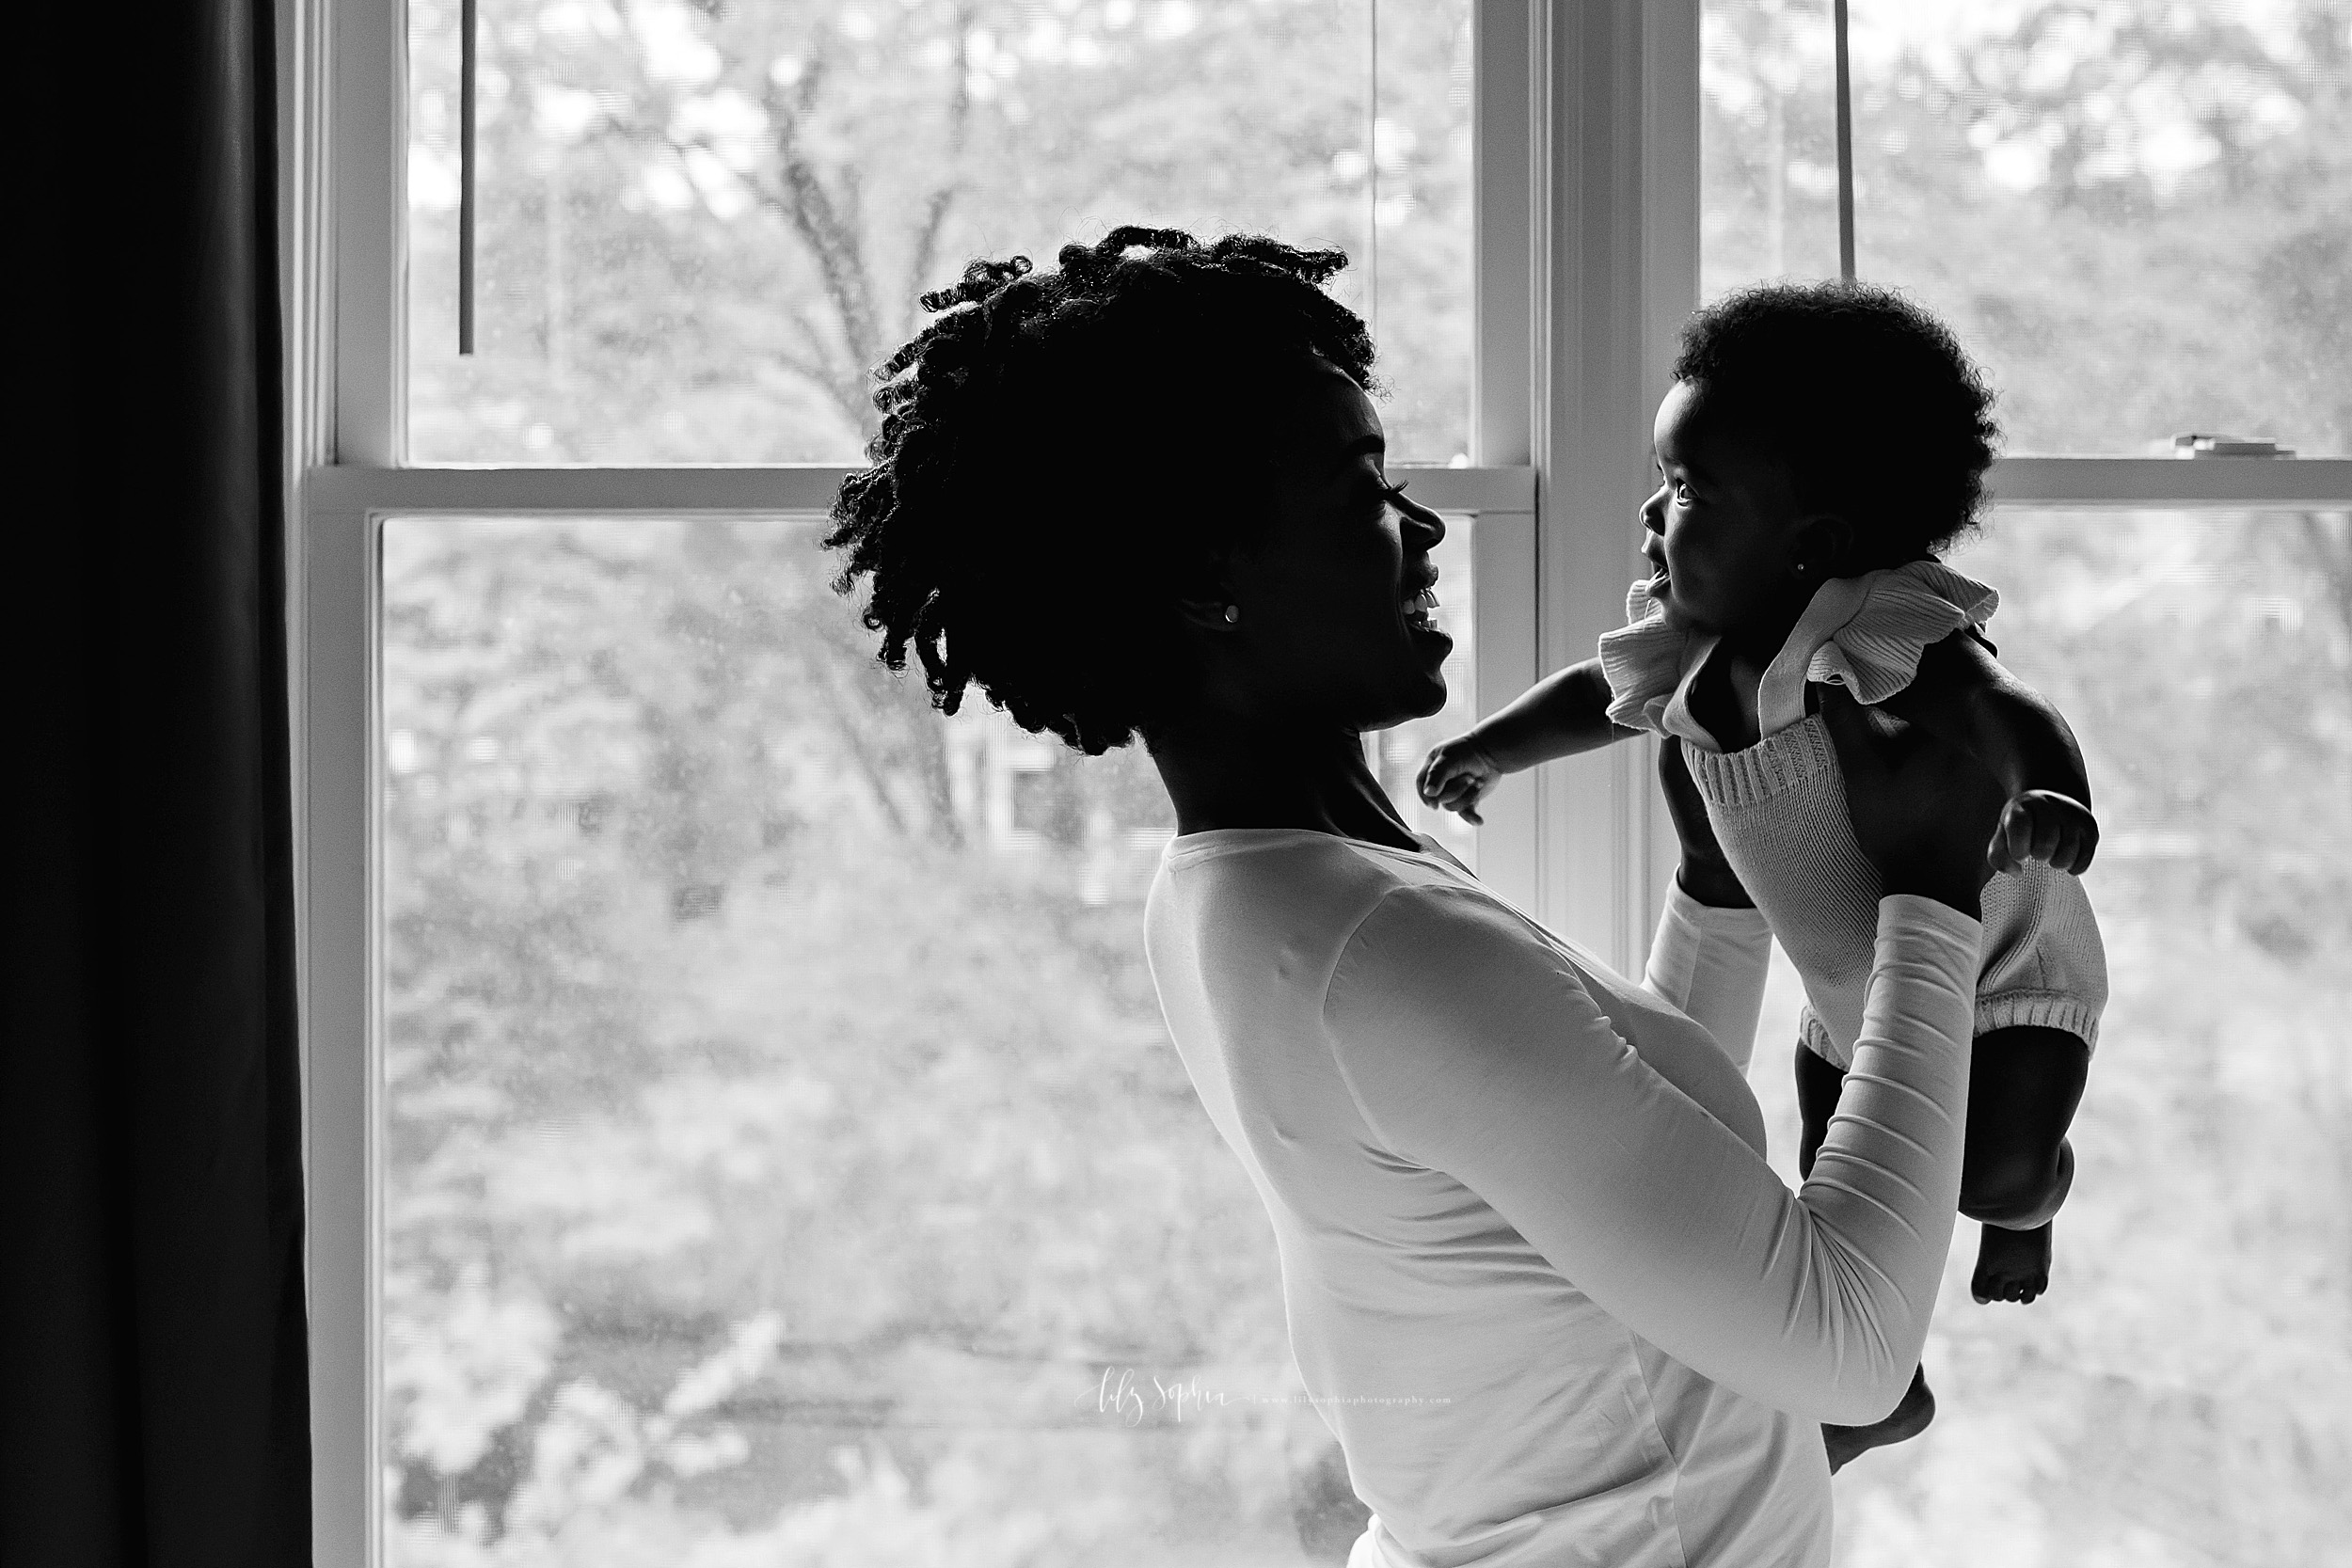 atlanta-midtown-brookhaven-decatur-lily-sophia-photography-photographer-portraits-grant-park-nigerian-family-in-home-lifestyle-big-brother-baby-sister_0043.jpg